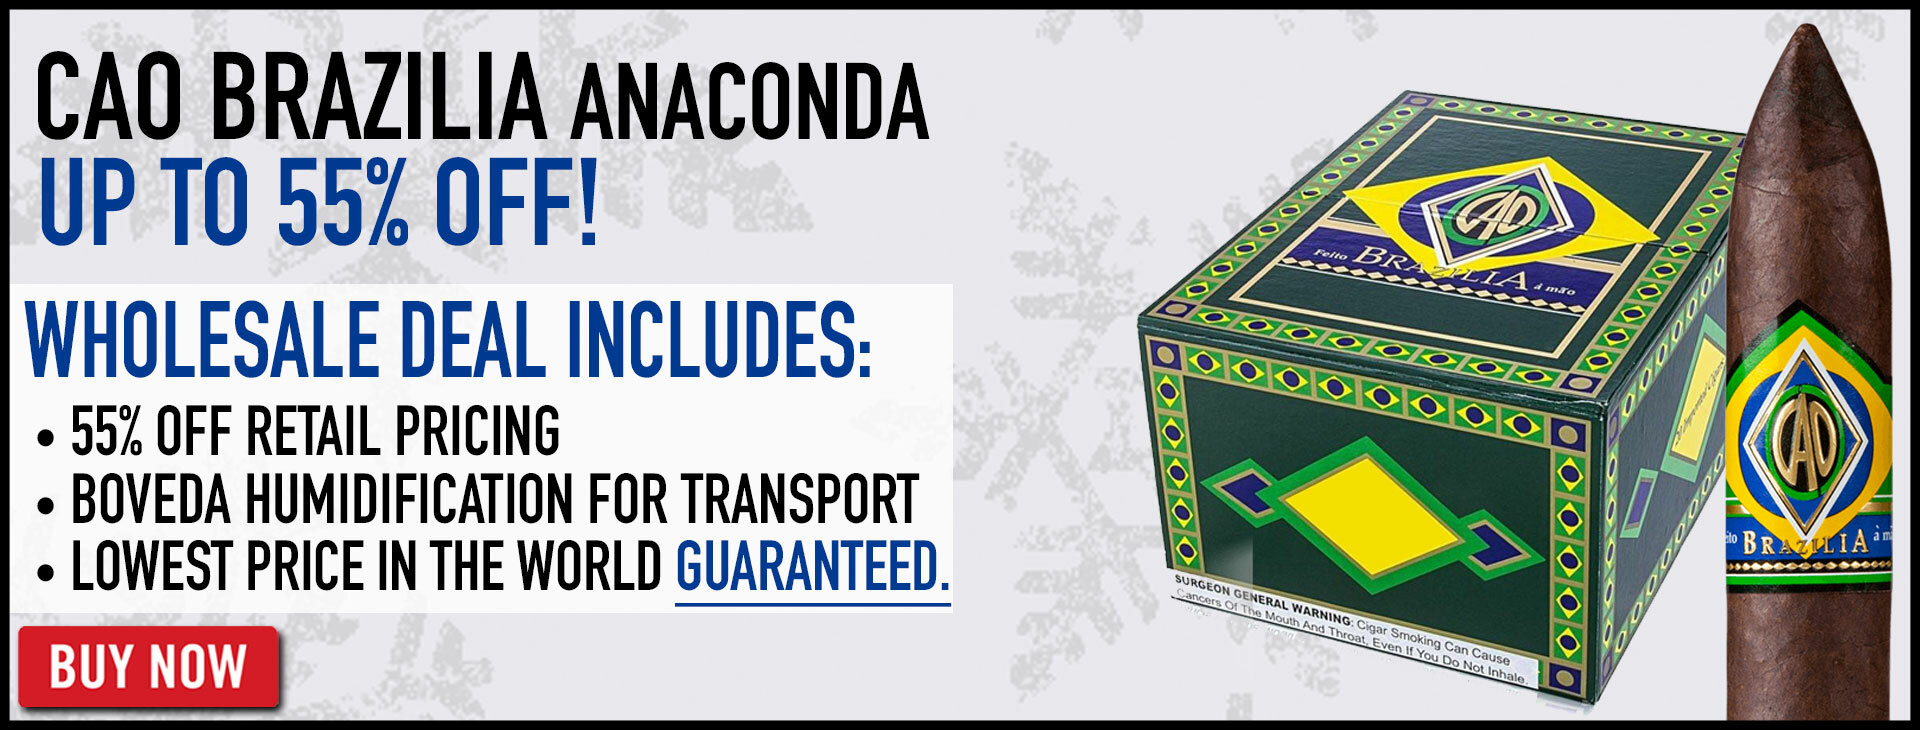 55% OFF CAO Brazilia Anaconda!